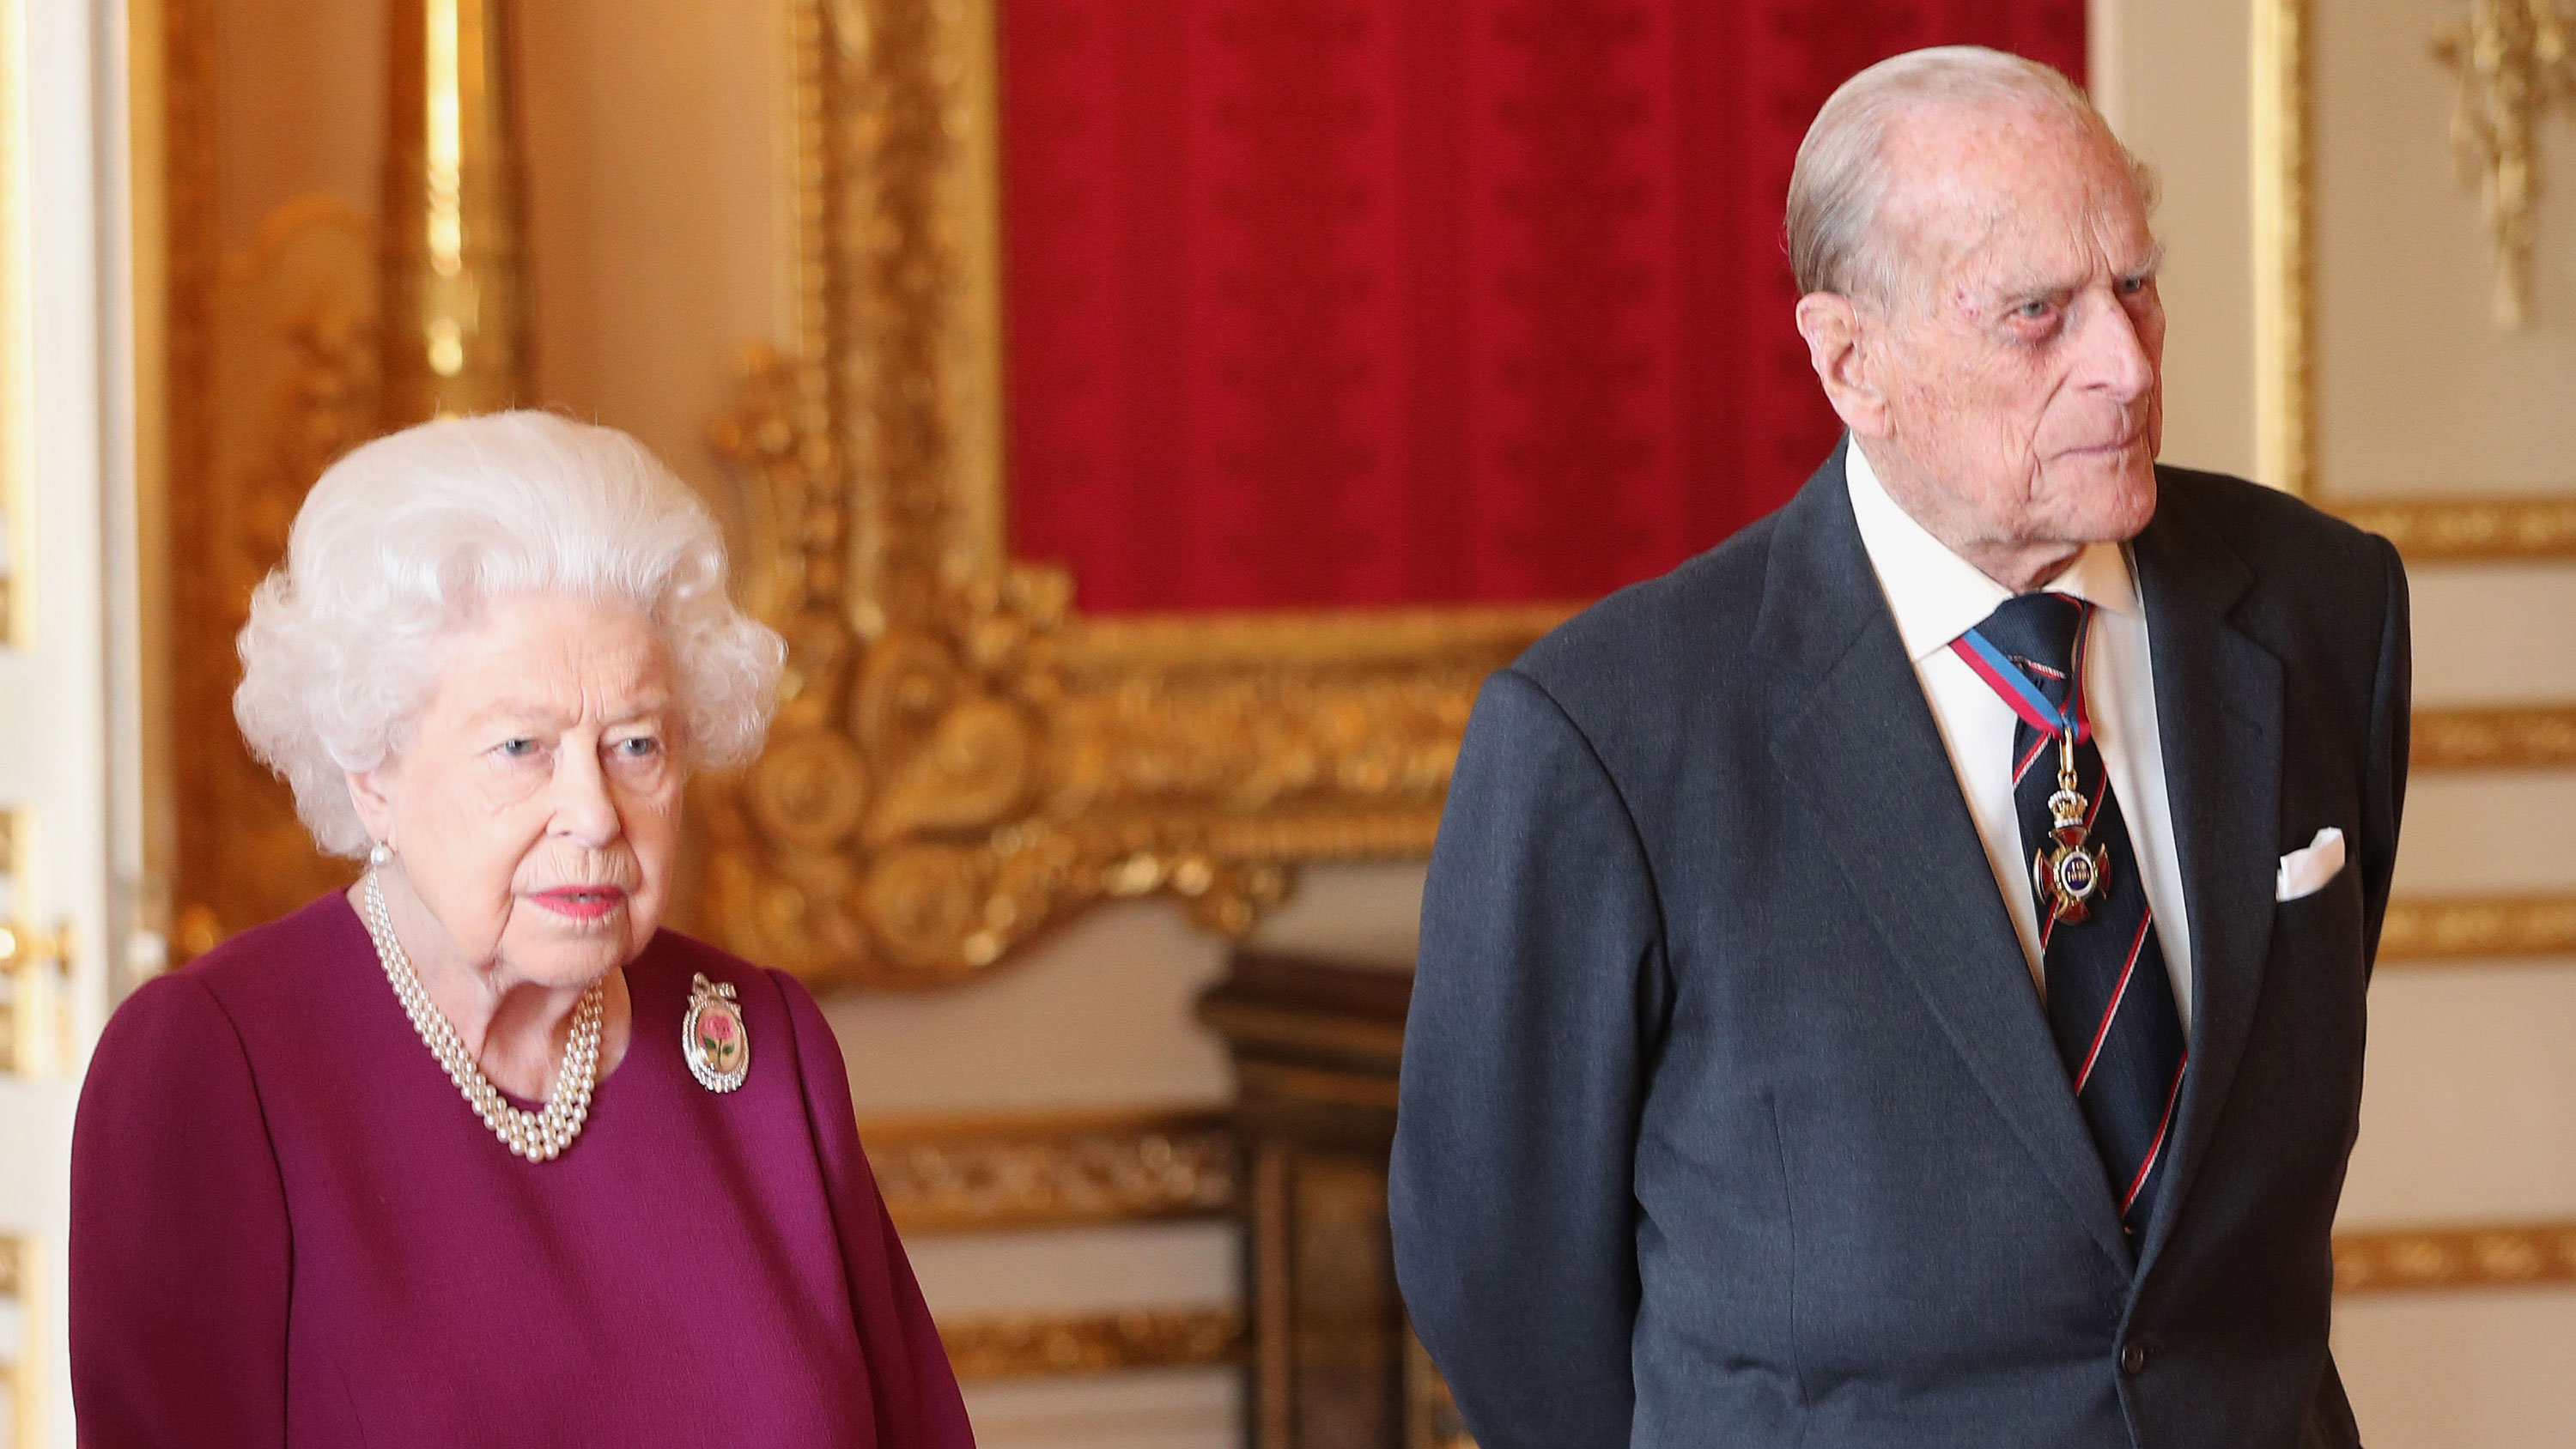 Queen Elizabeth and Prince Philip attend a luncheon at Windsor Castle on May 7, 2019 in Windsor, England.